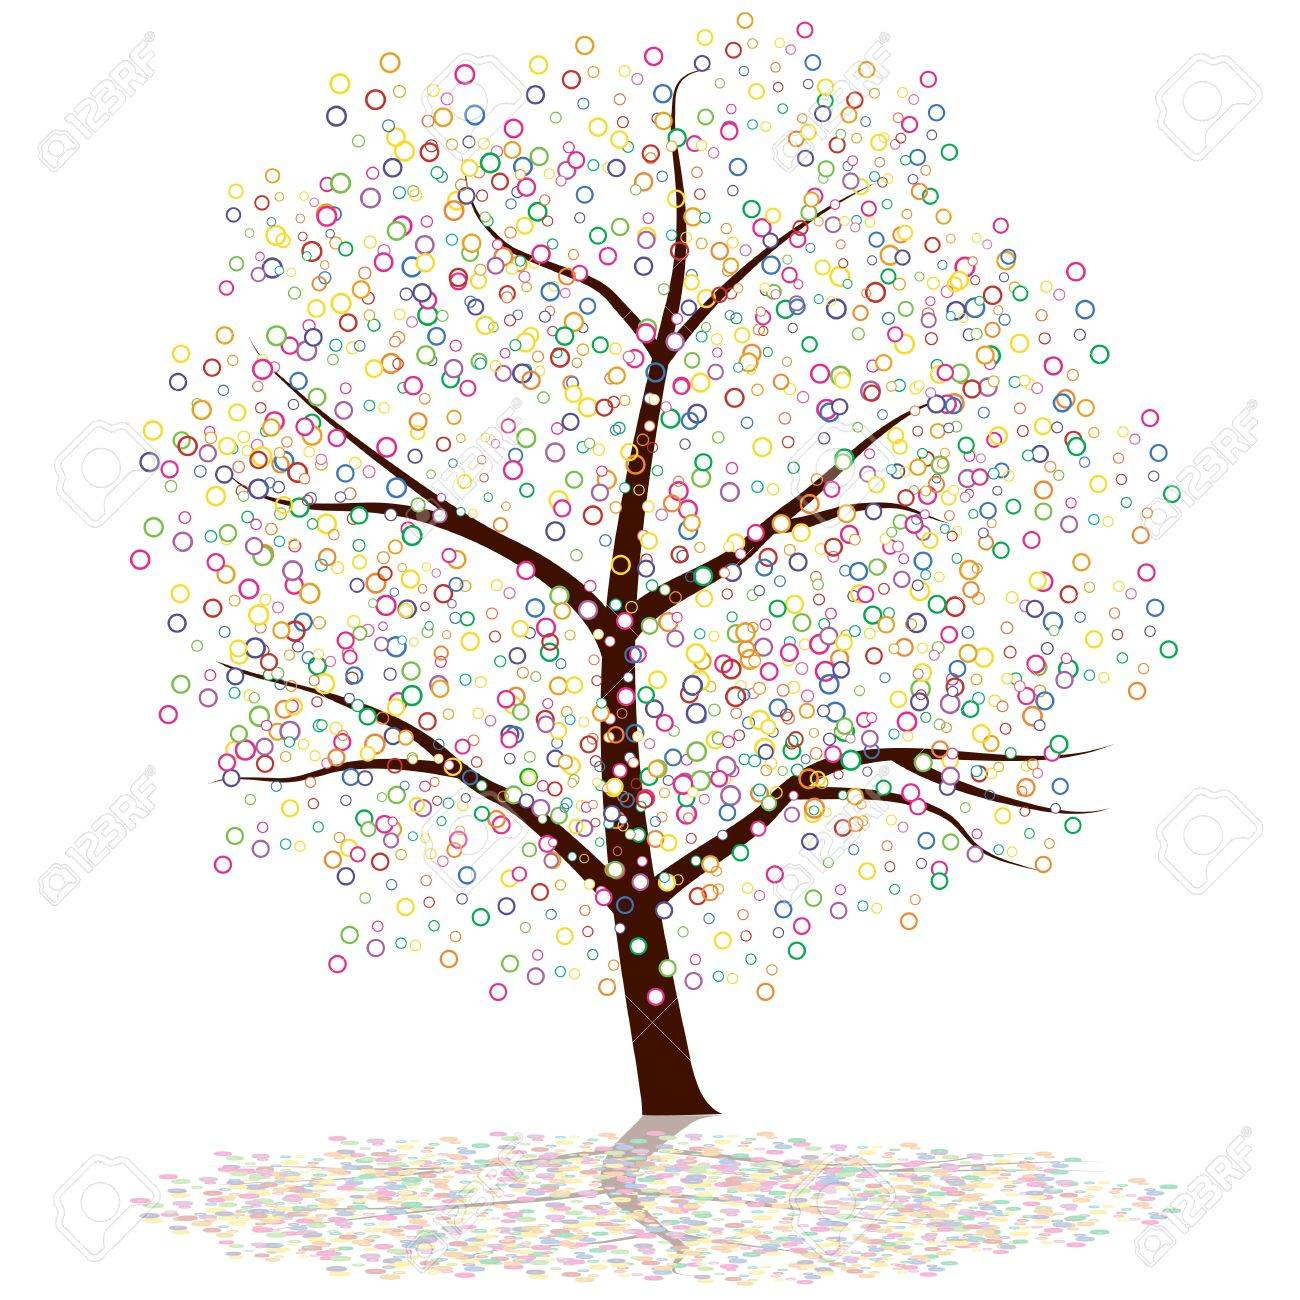 An image of a dot tree. Stock Vector - 10205057